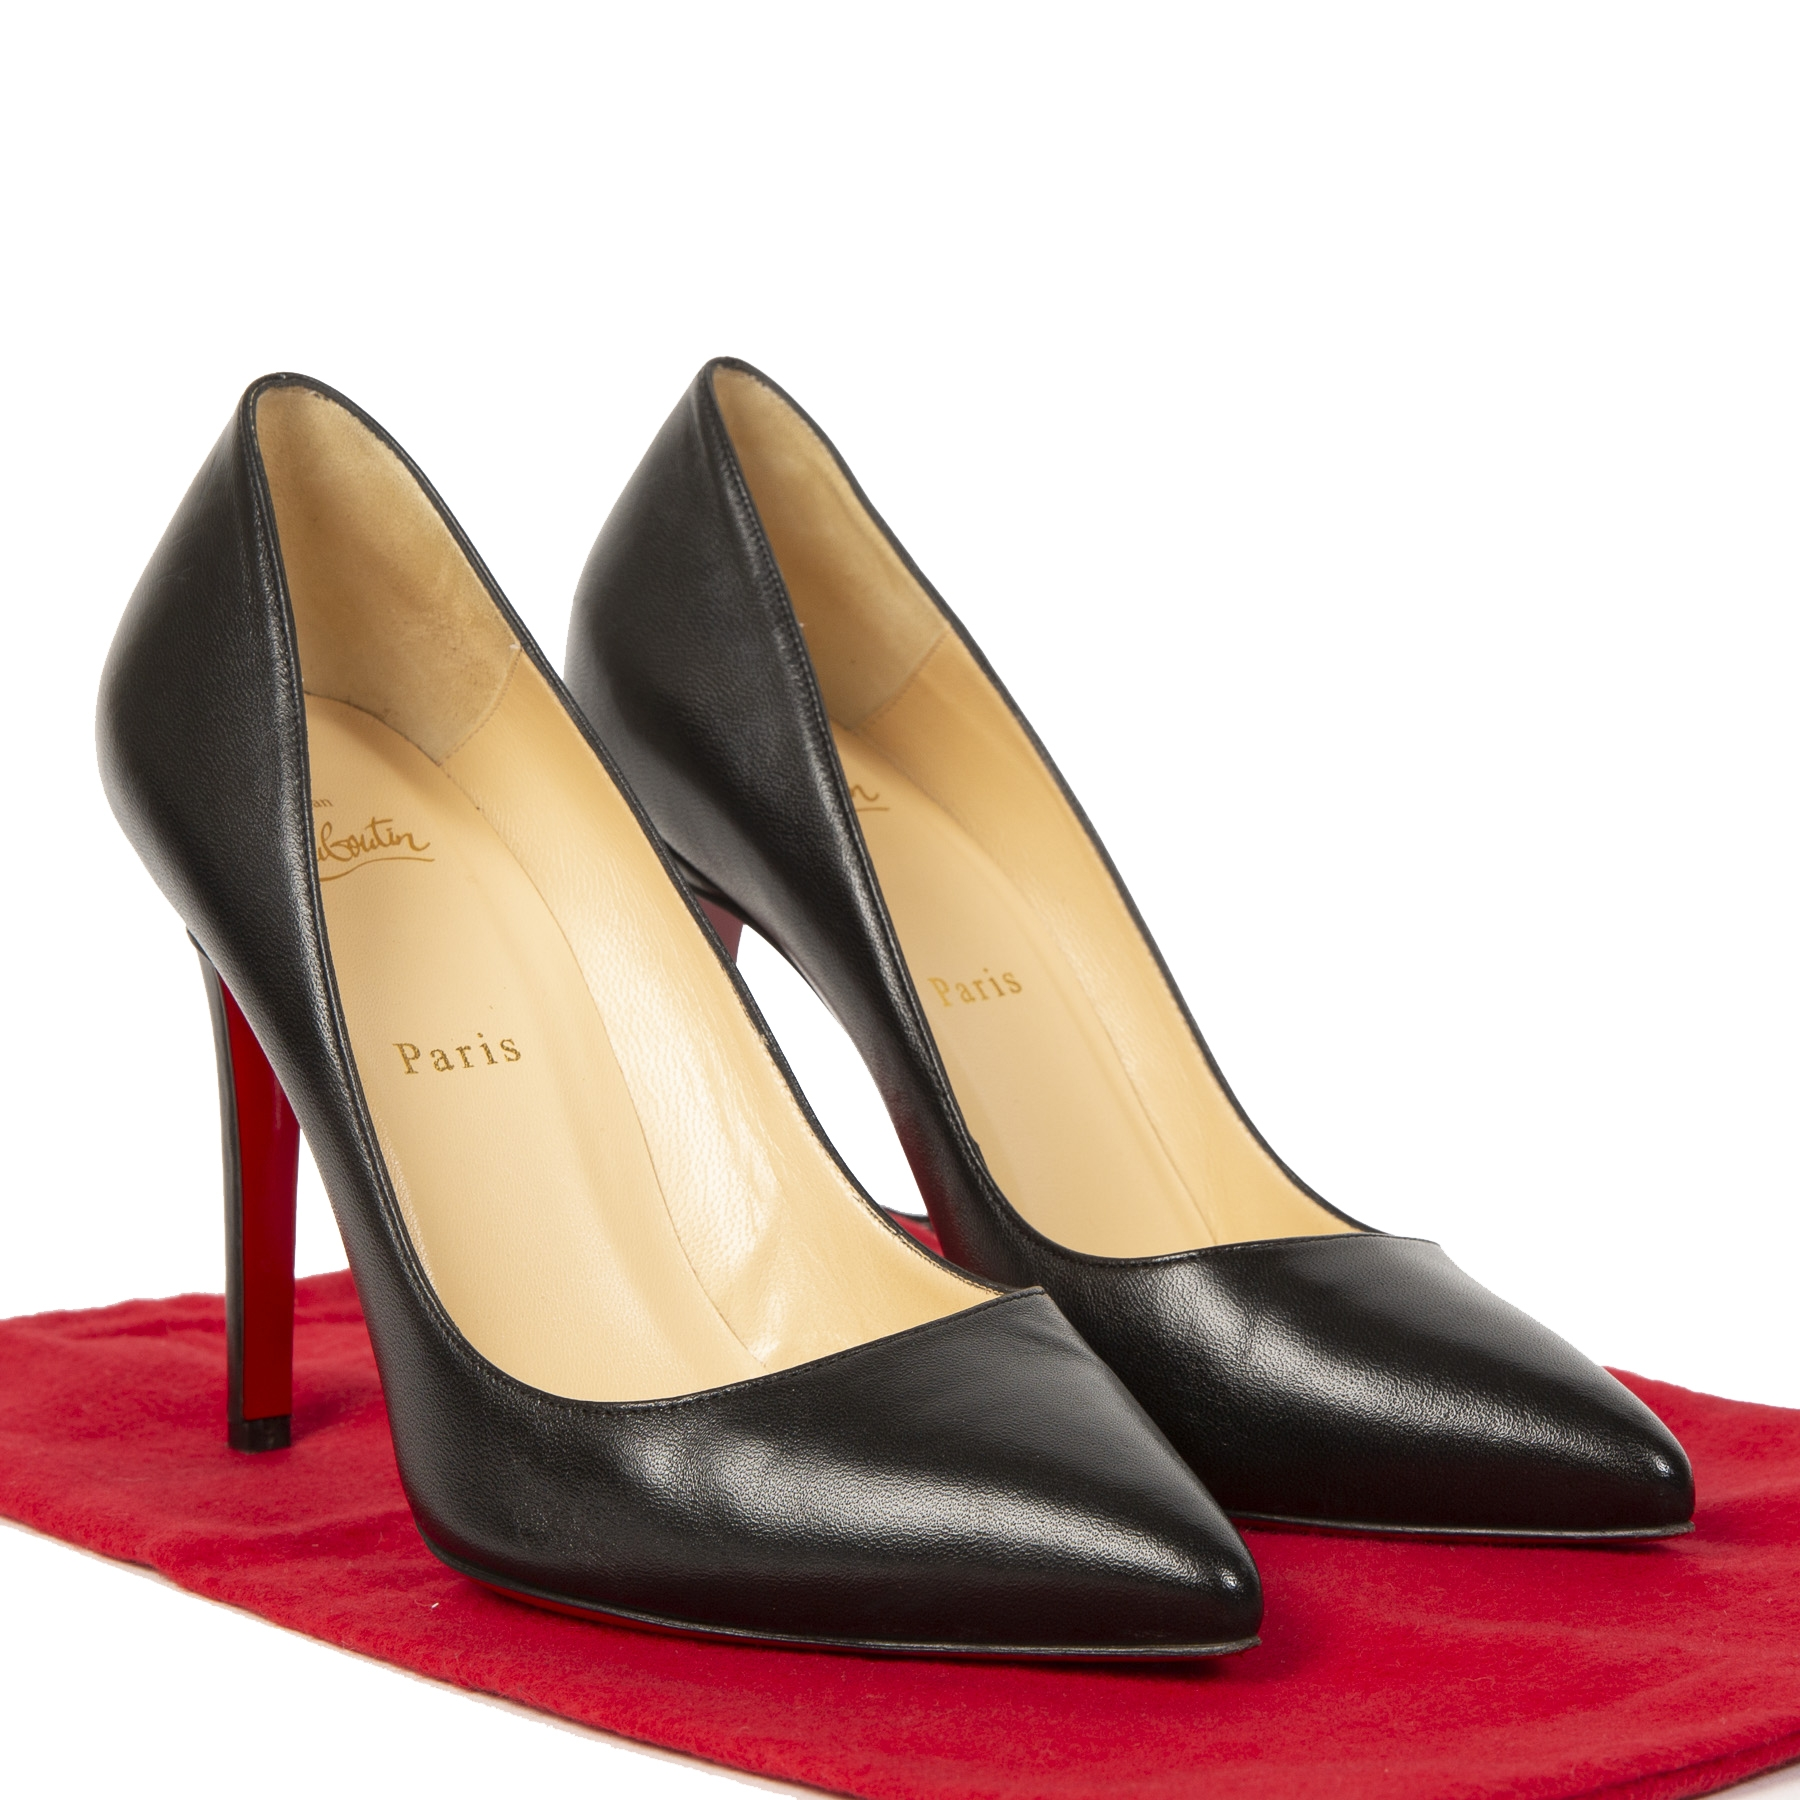 Christian Louboutin Pigalle 100 Nappa Shiny Black Pumps